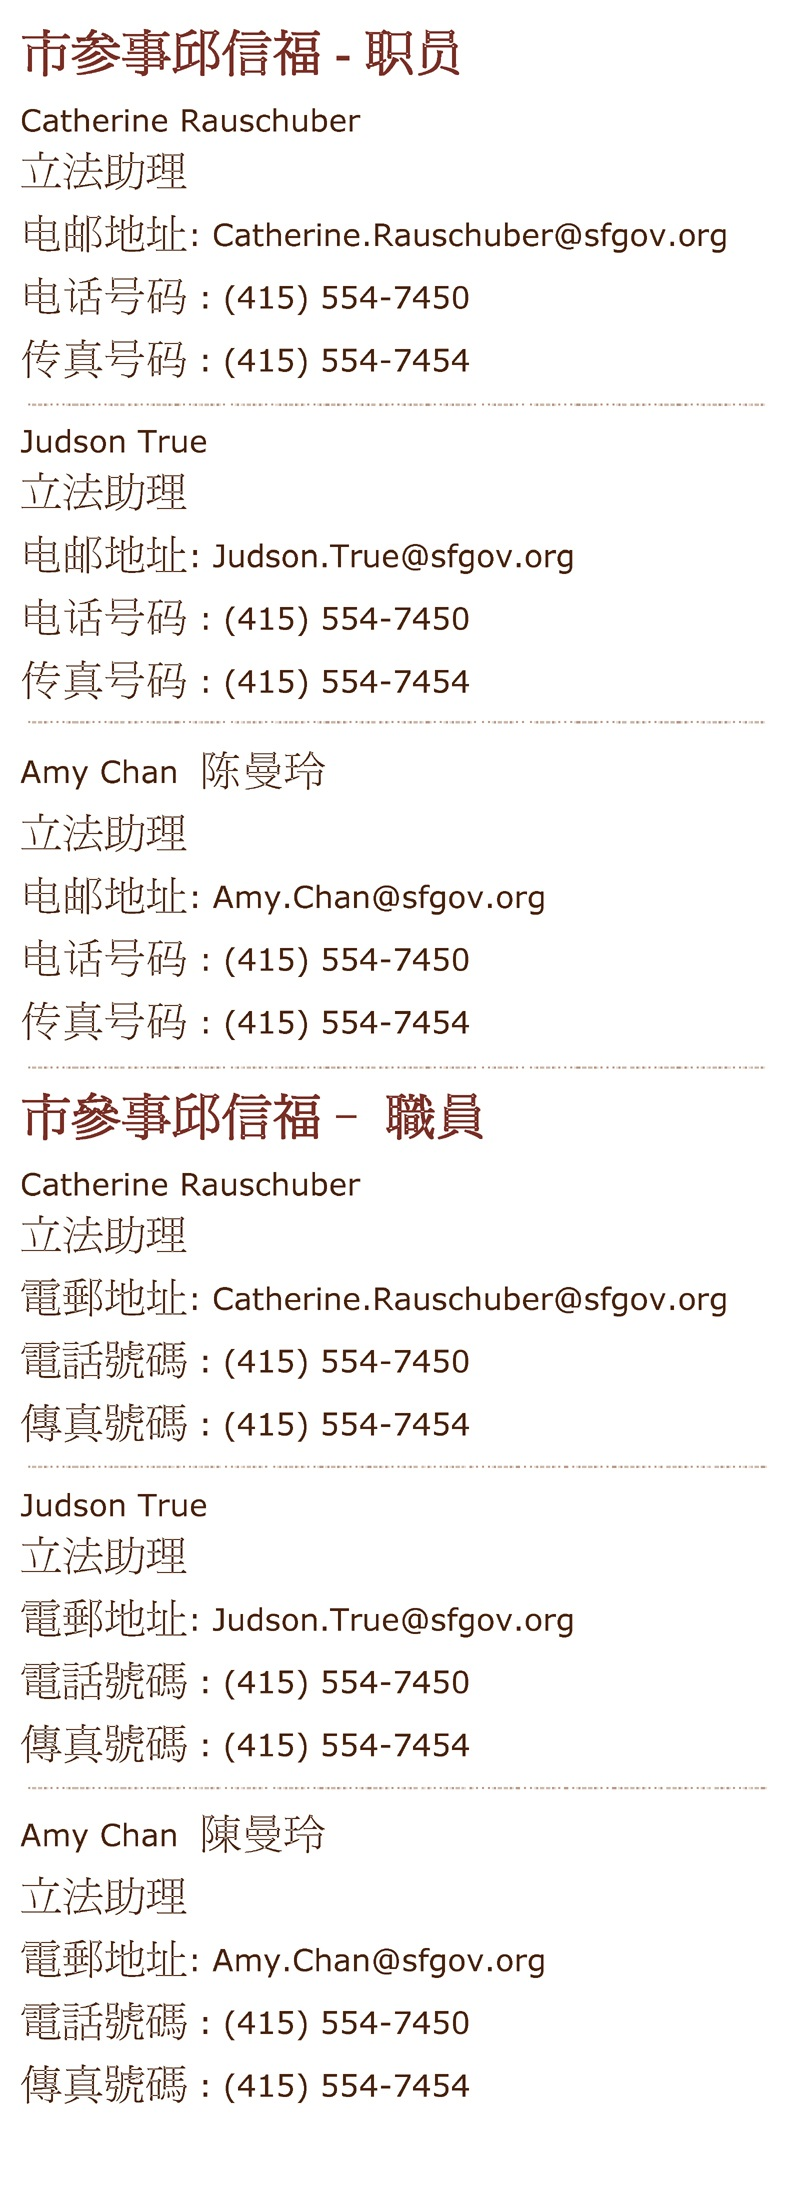 Supervisor Chiu Contact in Chinese